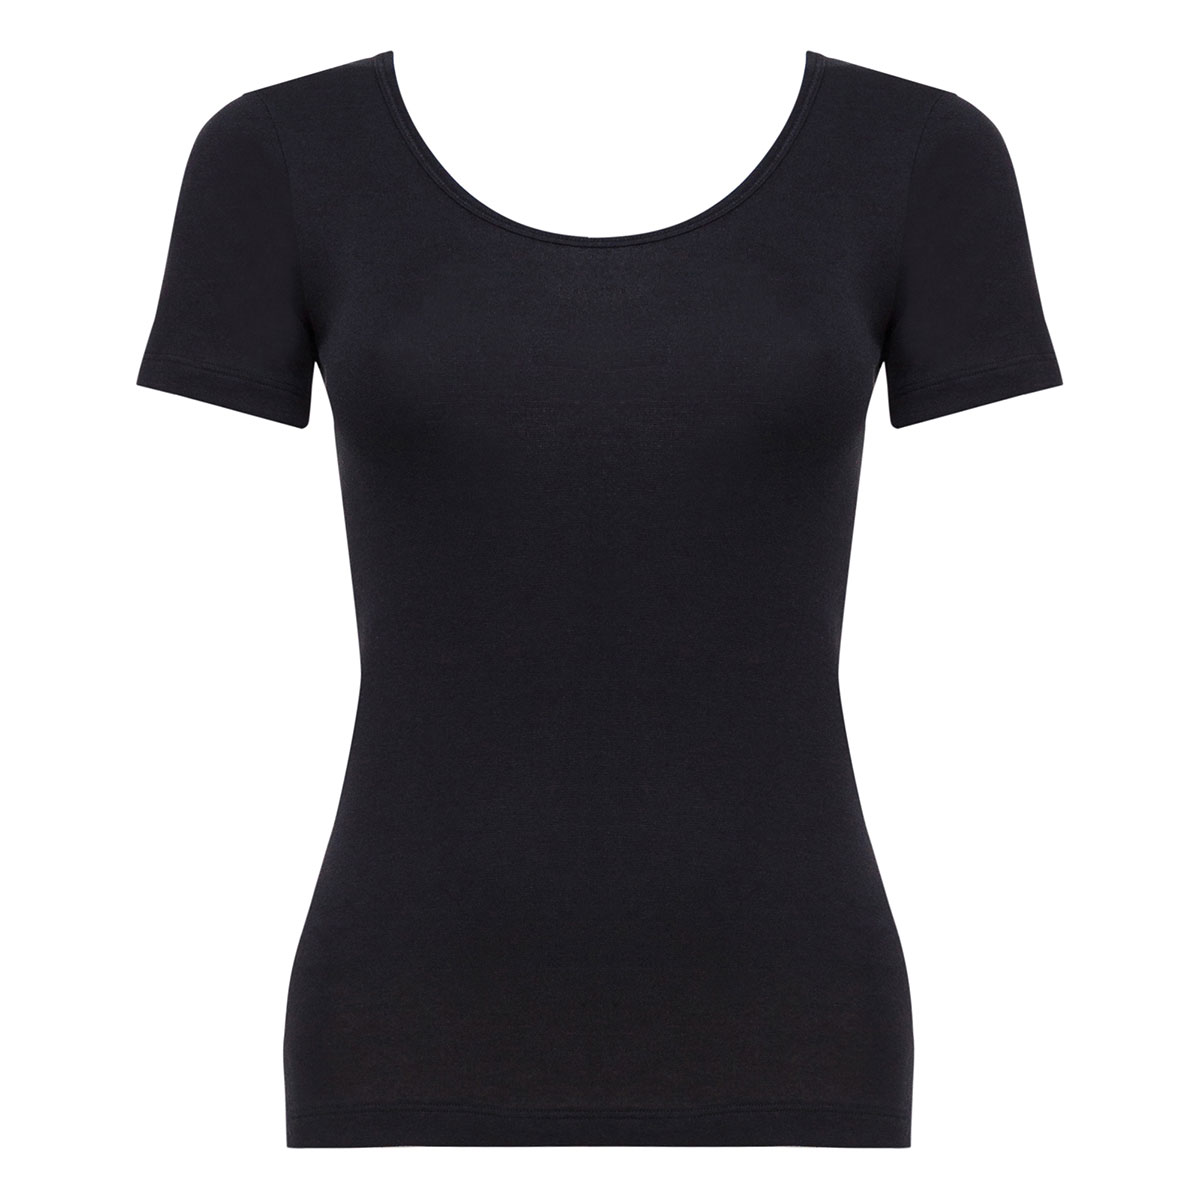 Short Sleeve Top in Black - Cotton Liberty-PLAYTEX